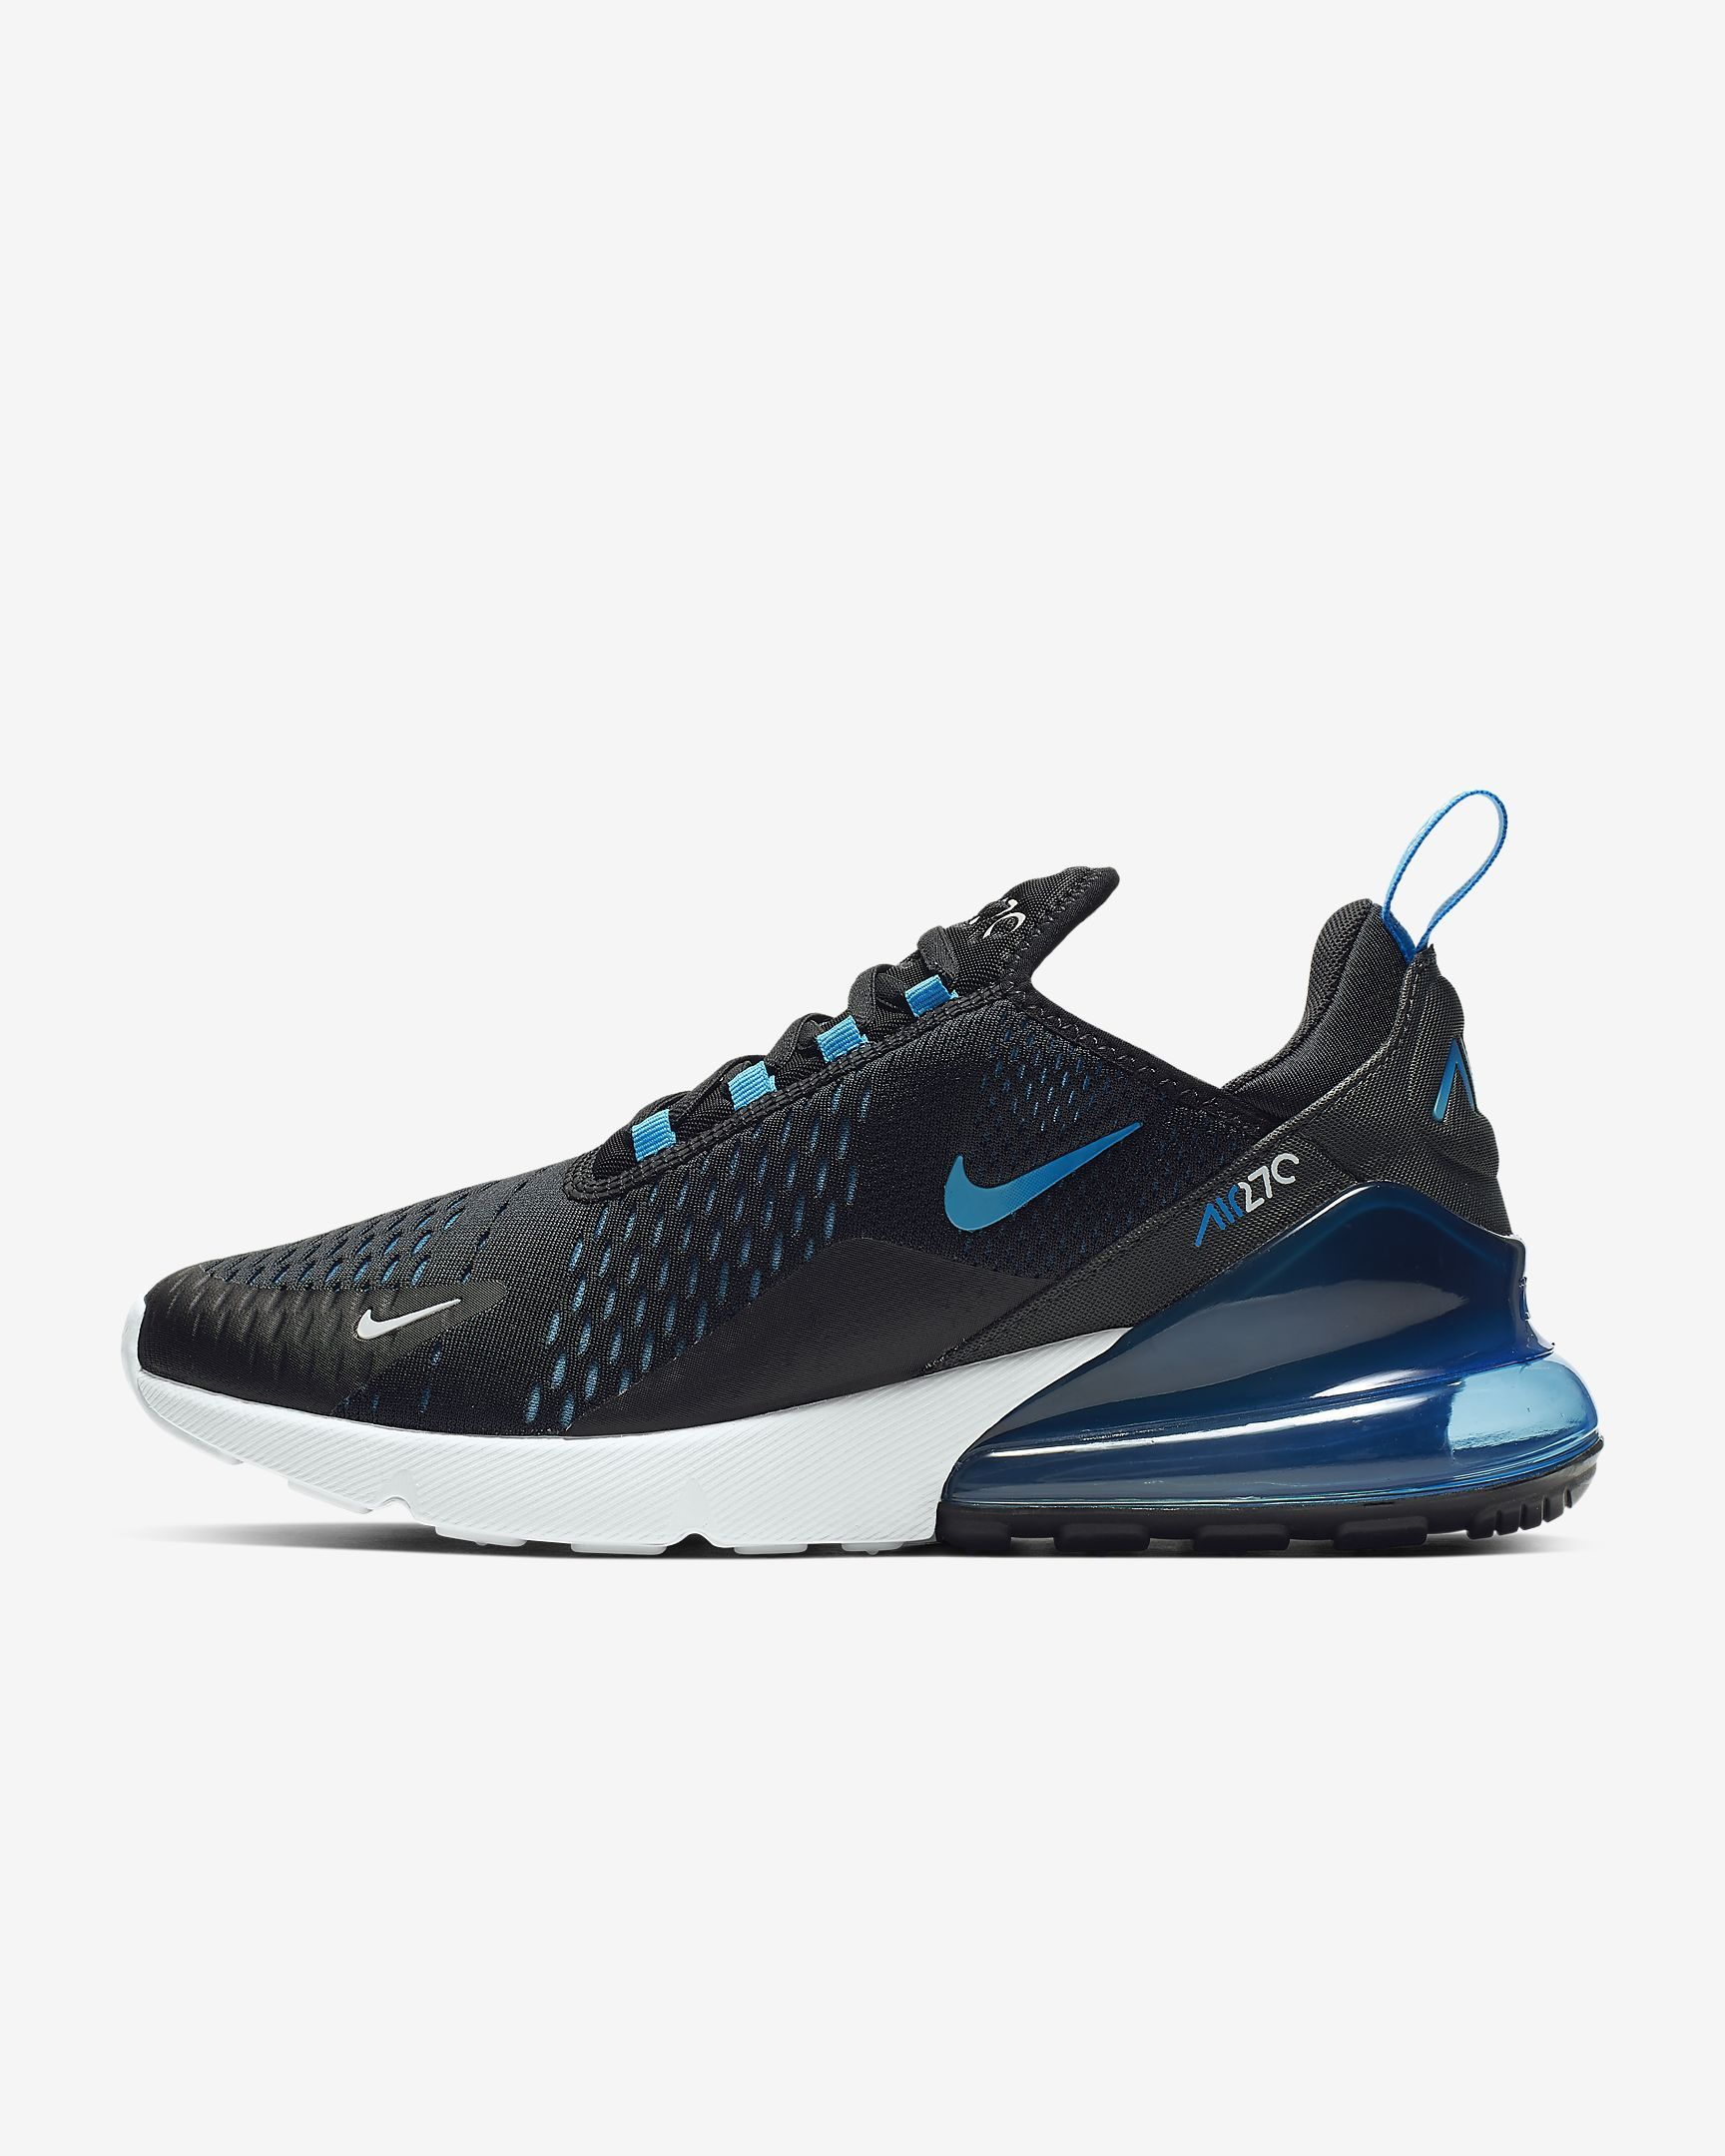 reputable site 41ca7 f2373 Nike Air Max 270 Men s Shoe. Nike.com GB